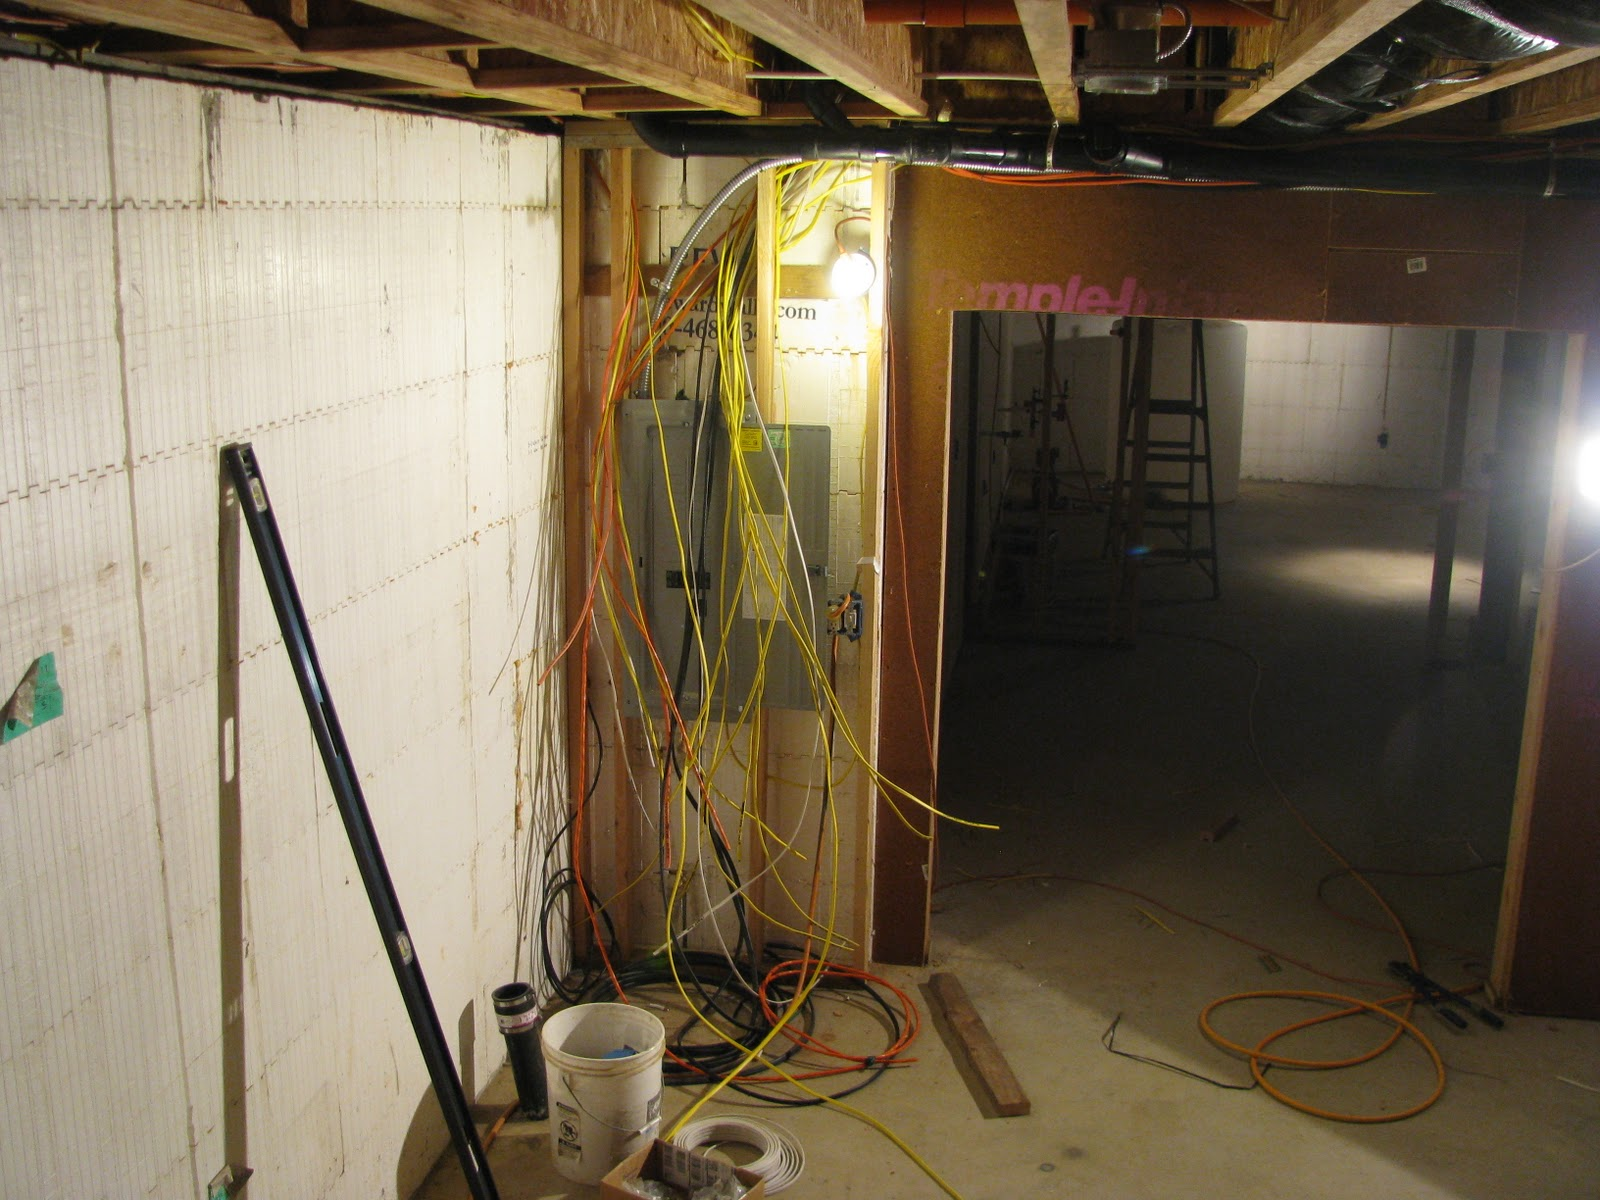 Washington New Old House Wire Everywhere And Not A Light To Blink Basic Electrical Wiring On In The Home Wires Are Id Like Think She Stopped By Her Way See Since Loved Watching Progress Blog